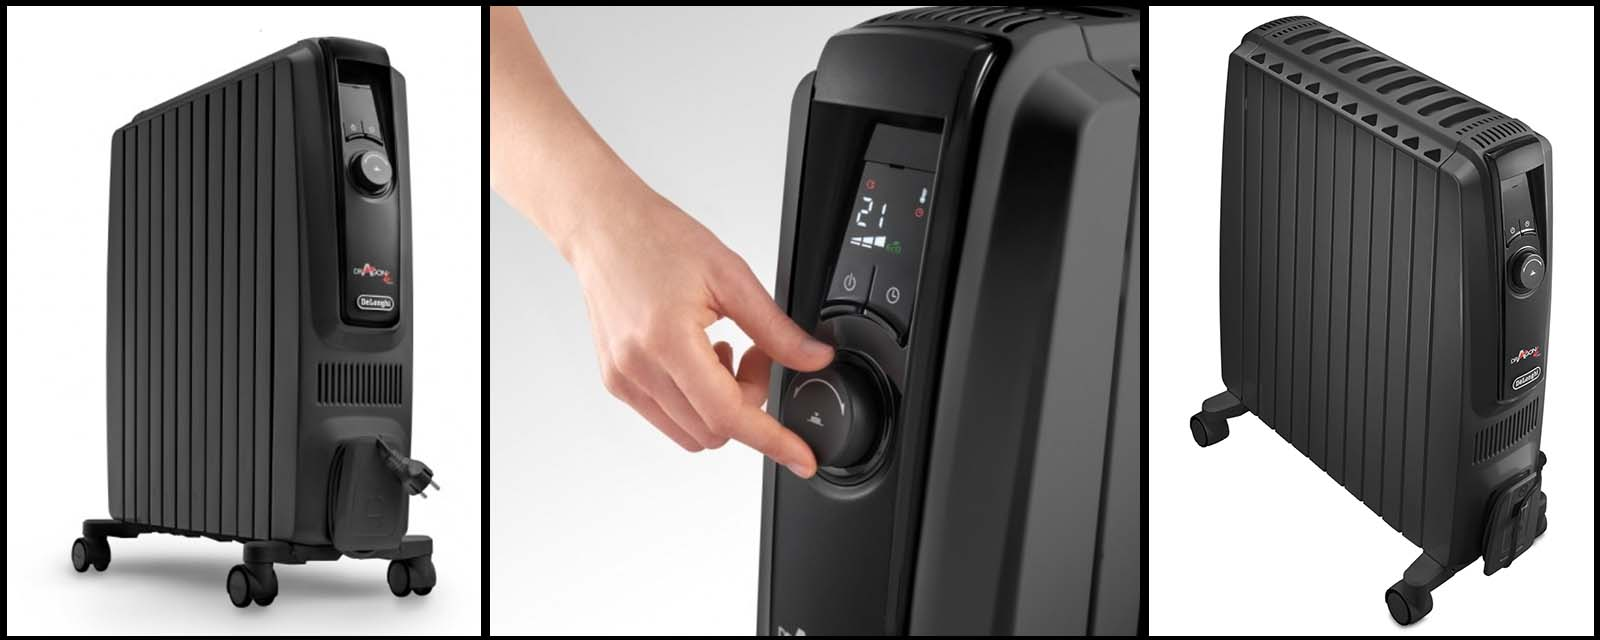 Three images of the DeLonghi Dragon 4 Pro Heater.